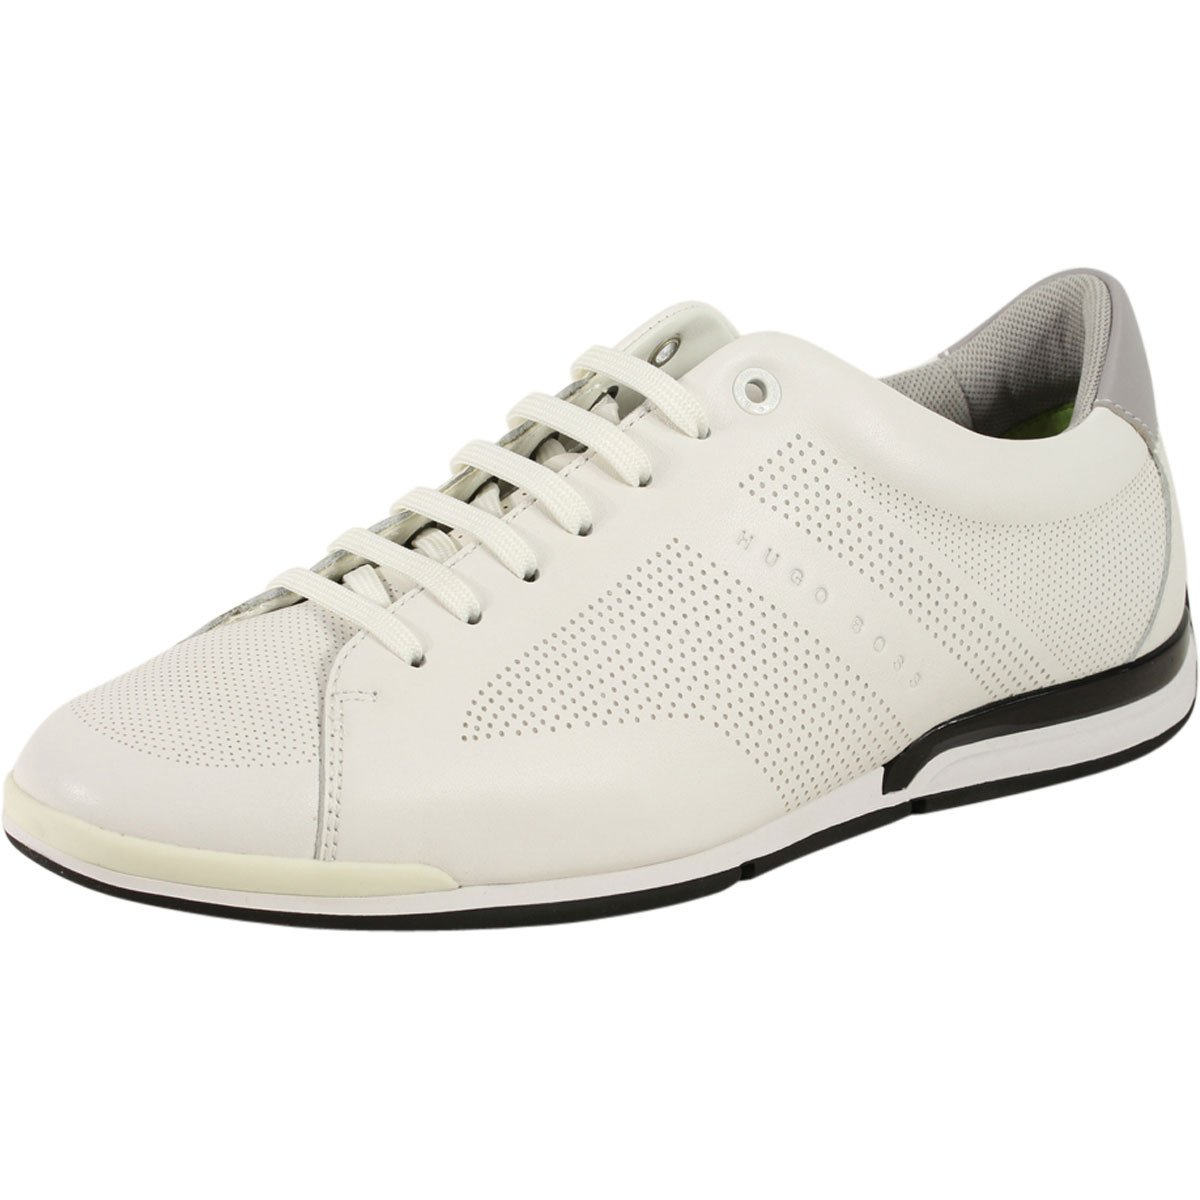 Hugo Boss Men's Saturn White Memory Foam Trainers Sneakers Shoes Sz: 9